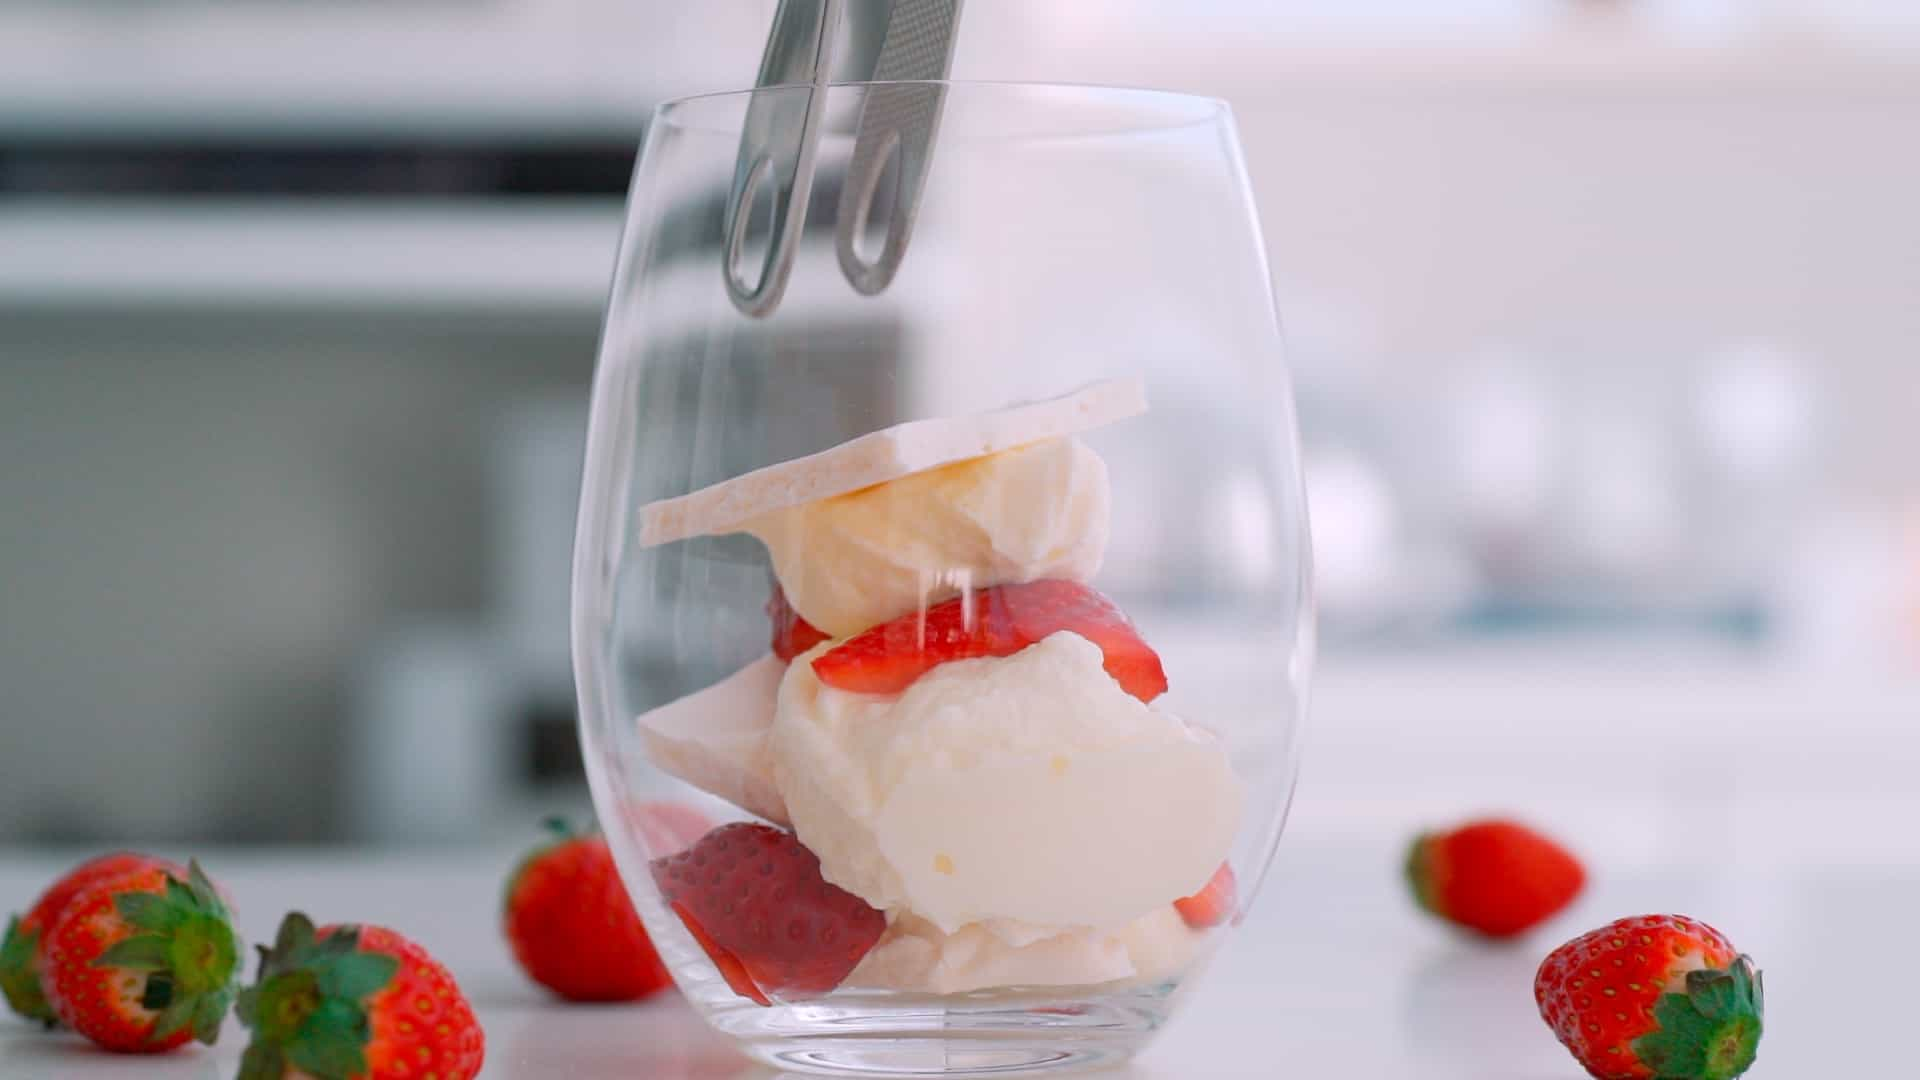 Plating an Eton Mess in a glass.